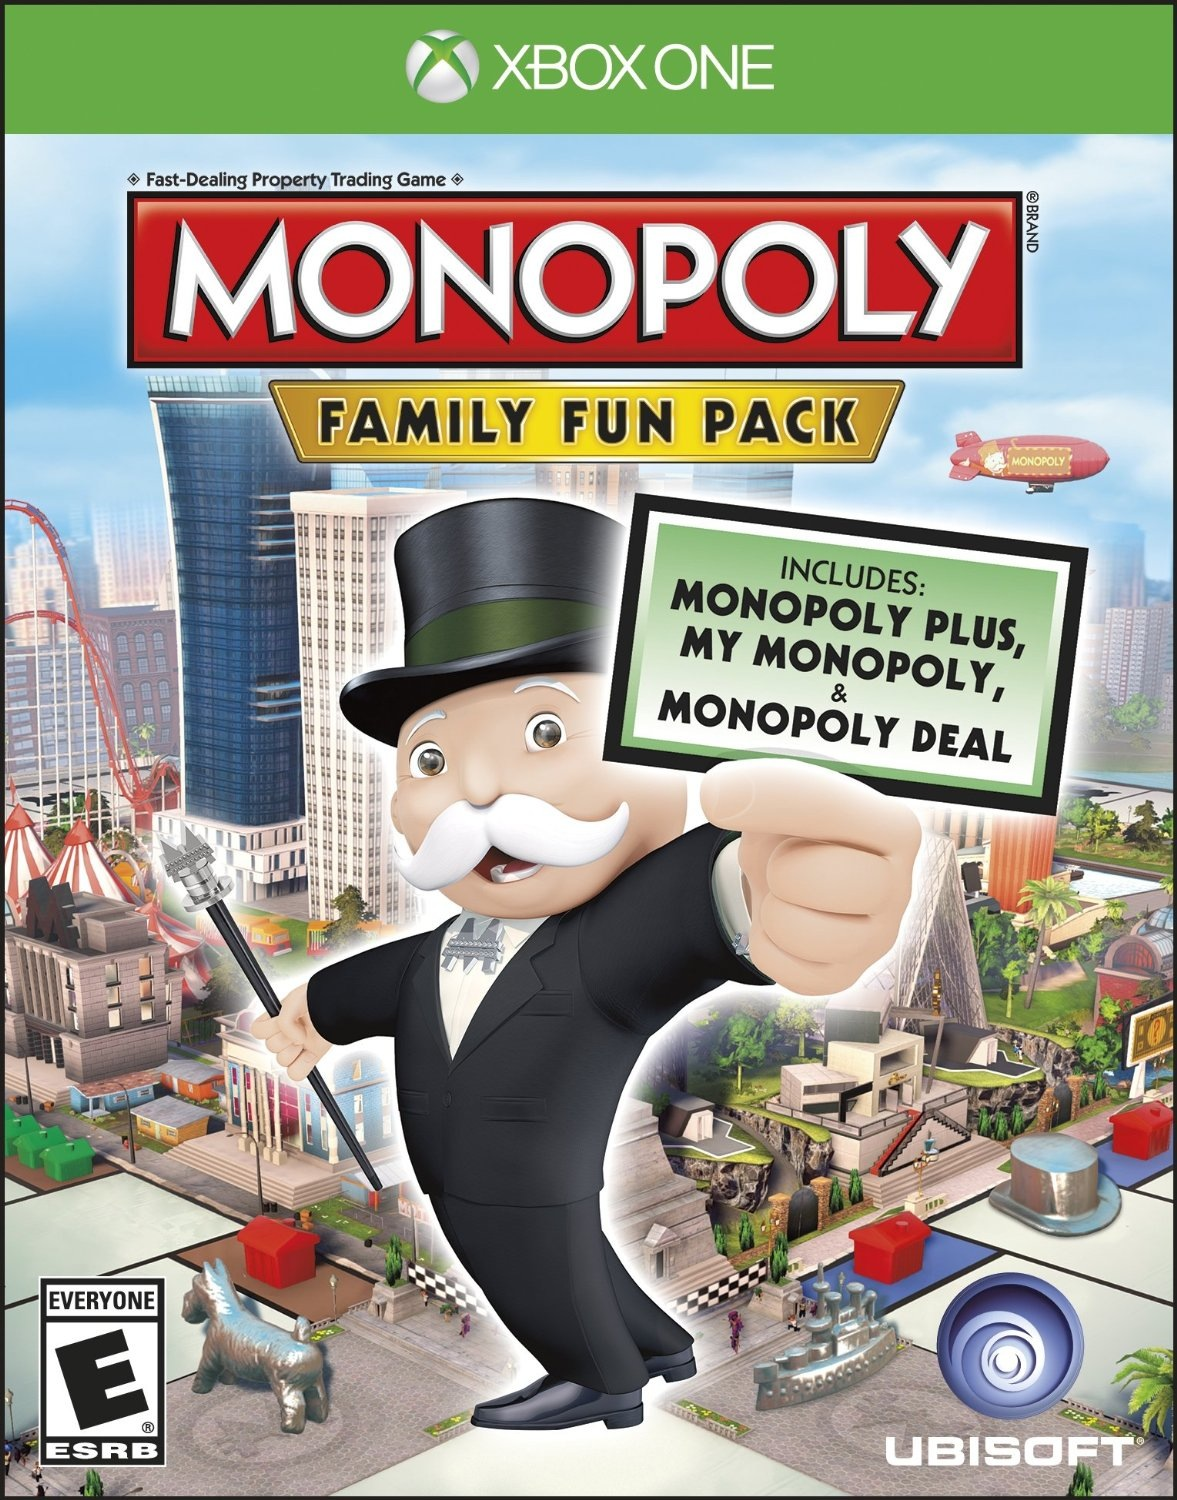 Monopoly Game For Xbox 1 : Monopoly family fun pack coming to us retail for xbox one